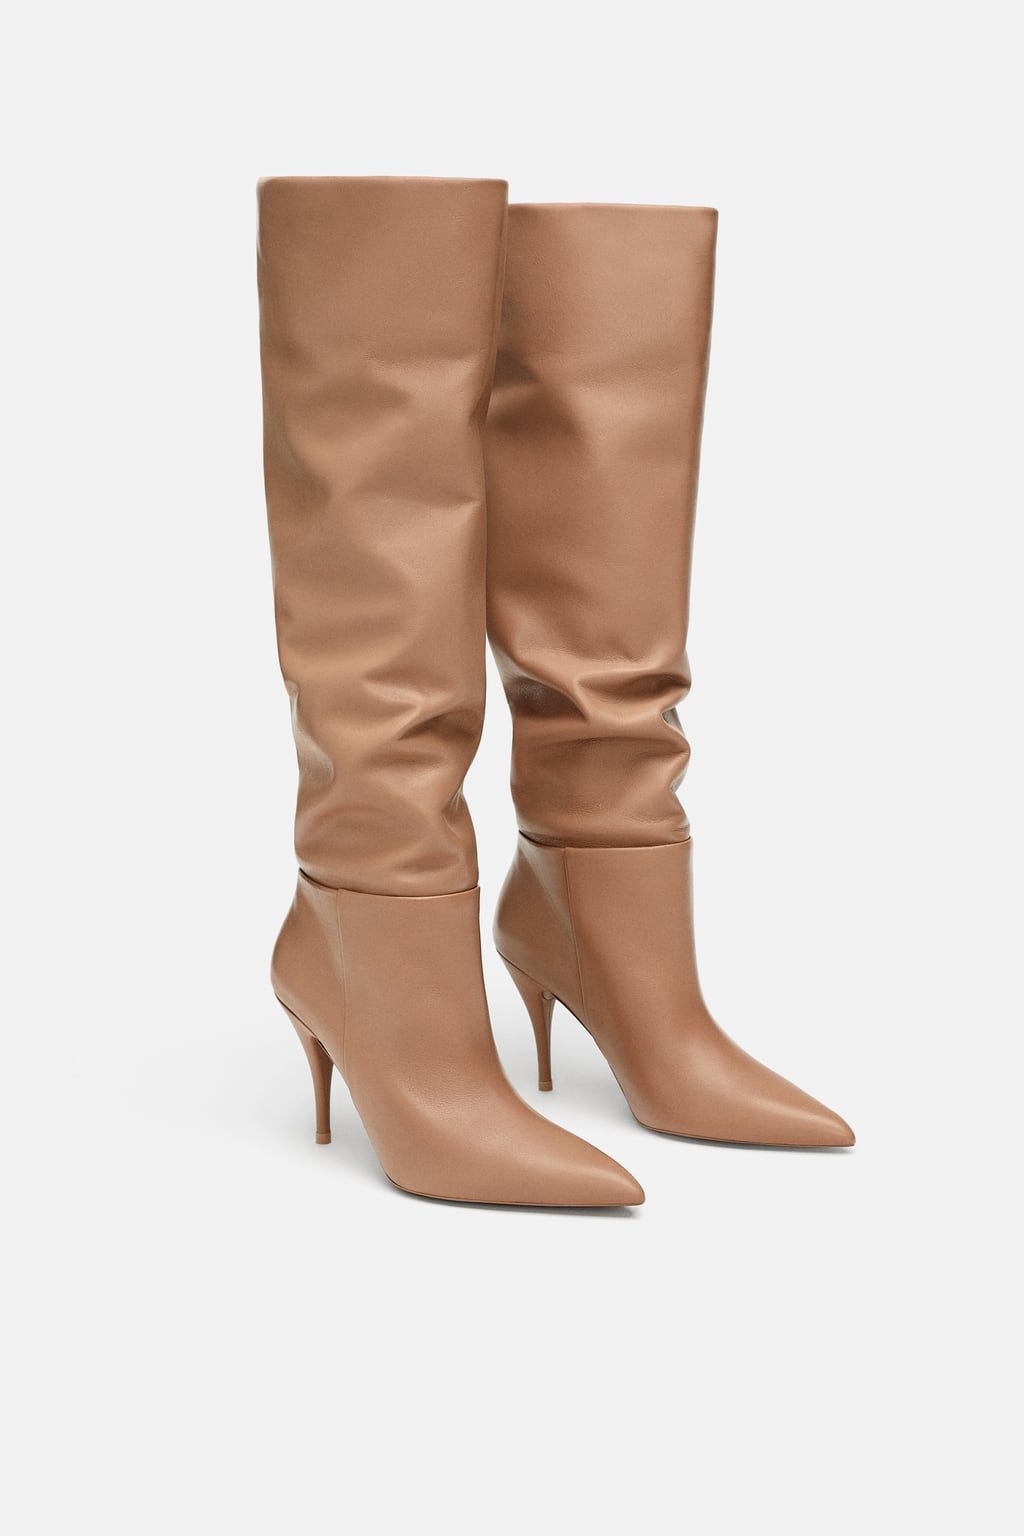 e6b69b76014 Soft leather high-heel boots in 2019 | Wish list | Leather high heel ...